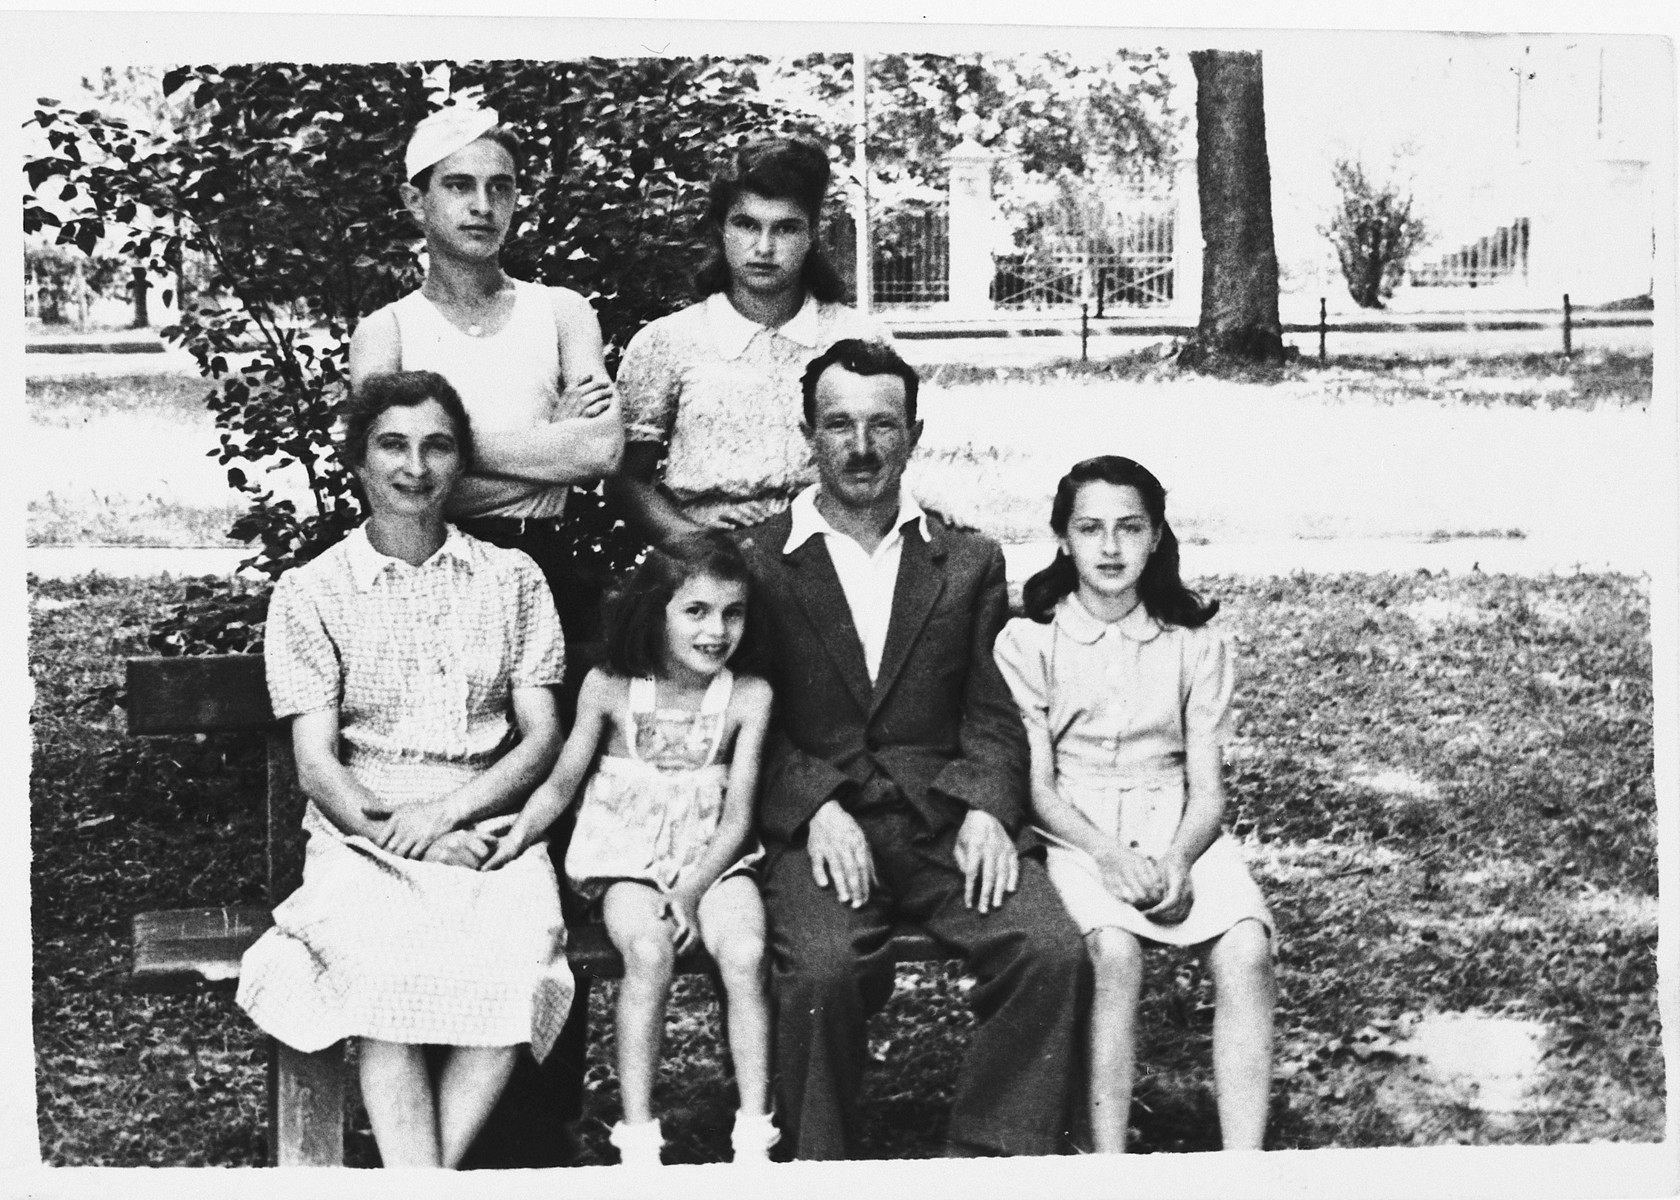 Group portrait of a Jewish DP family in the Gabersee displaced persons camp.  Pictured seated from left to right are: Czarna, Bronia and Simon Spielman and his niece, Miriam Galitzer.  Standing are Arthur and Henia Spielman.